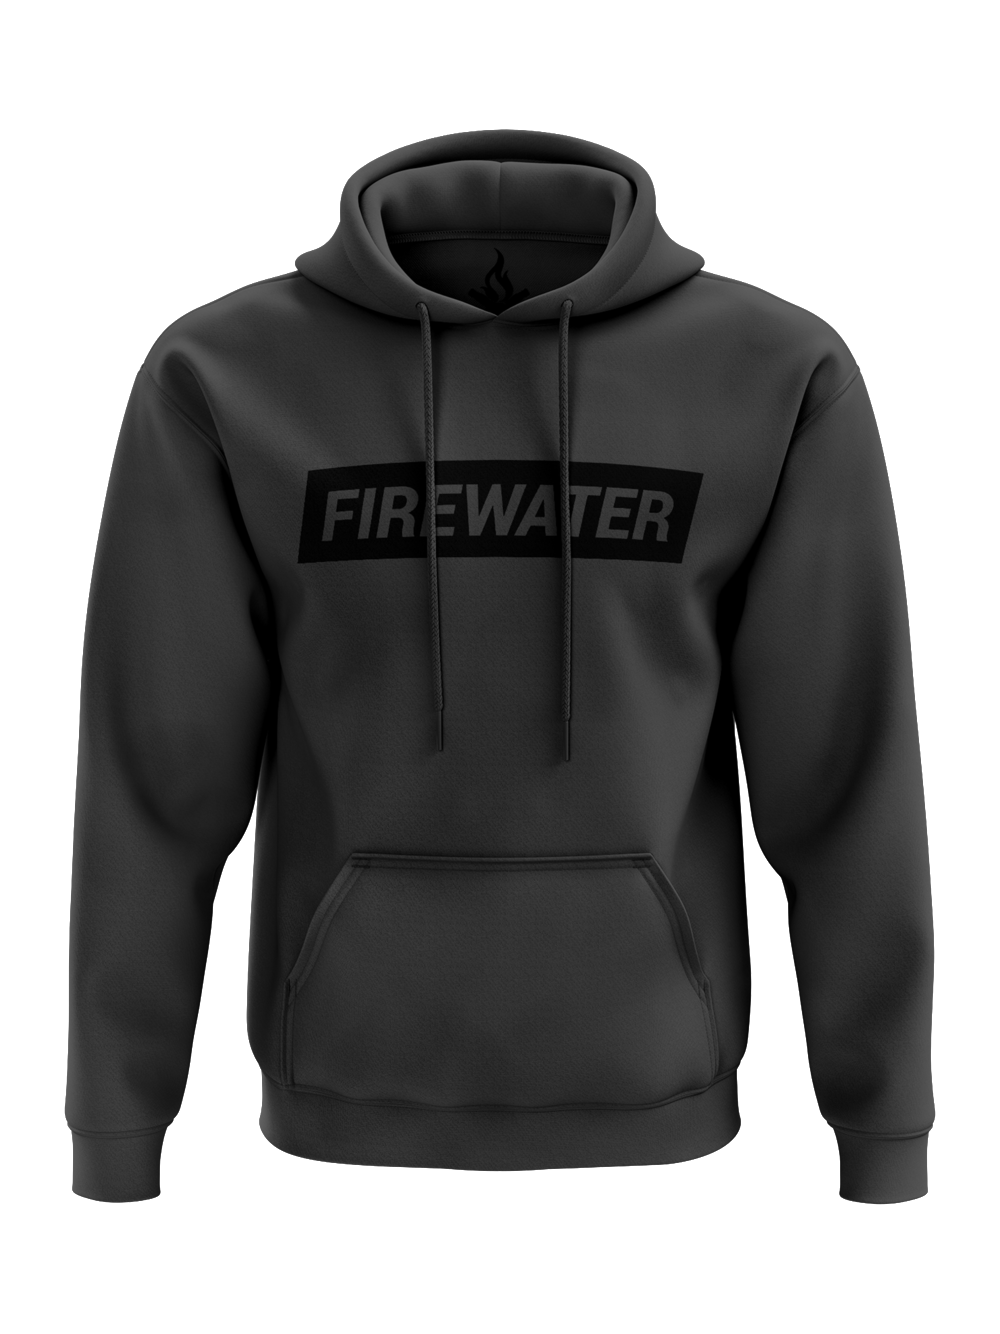 hoodie-front.png